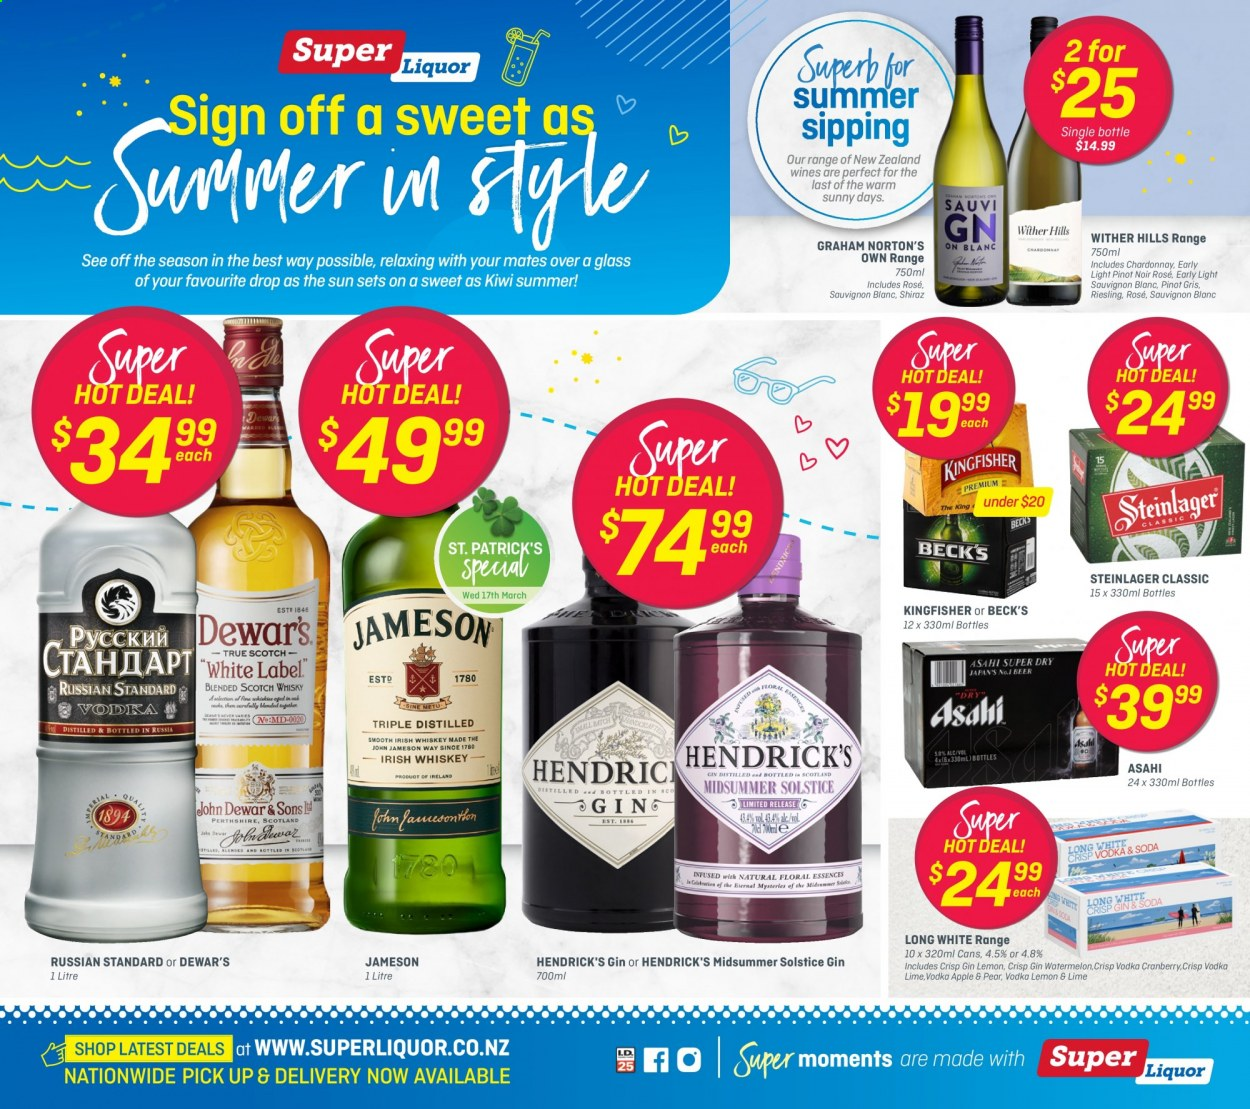 Super Liquor mailer - 01.03.2021 - 14.03.2021 - Sales products - Riesling, Chardonnay, wine, Pinot Noir, Wither Hills, Shiraz, Sauvignon Blanc, gin, vodka, Jameson, Hendrick's, Norton. Page 1.